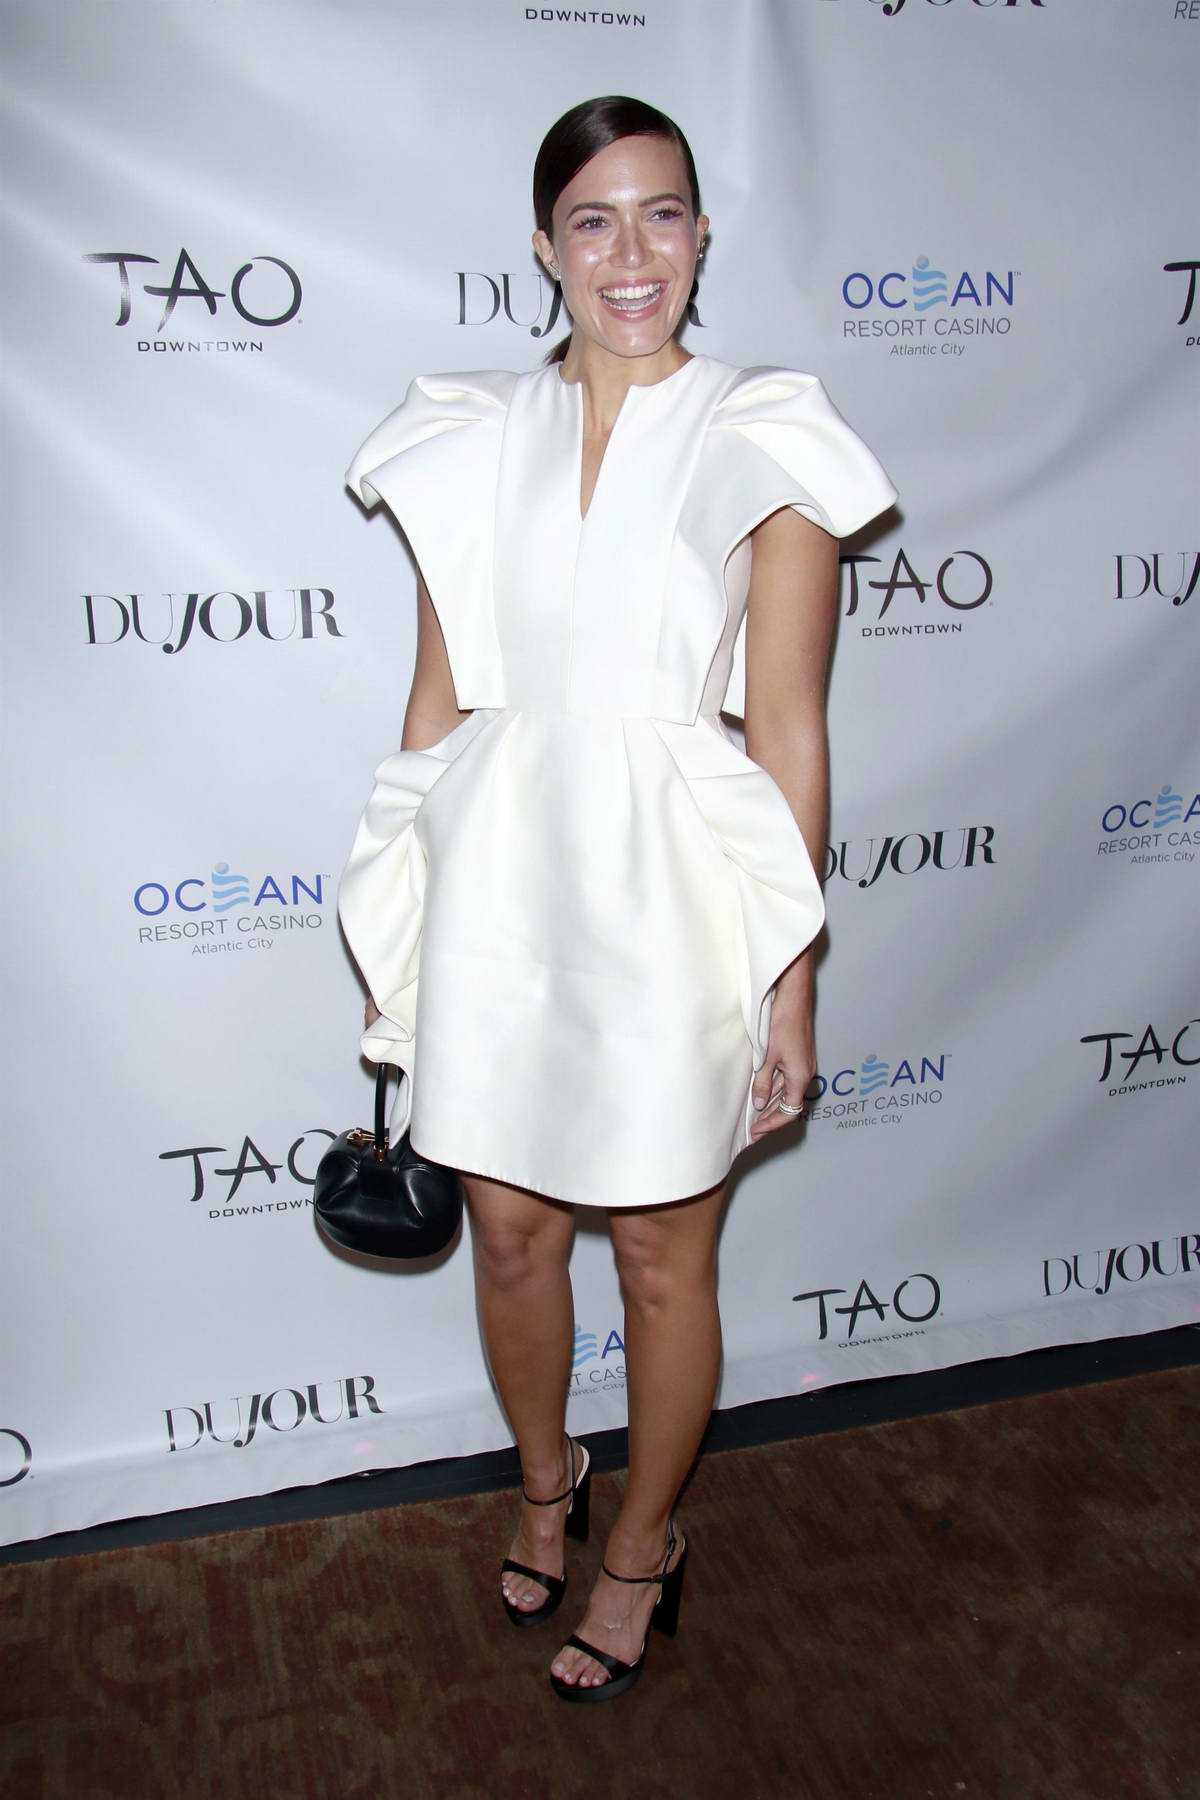 Mandy Moore attends the DuJour Fall Issue Cover Party with Mandy Moore at TAO Downtown in New York City